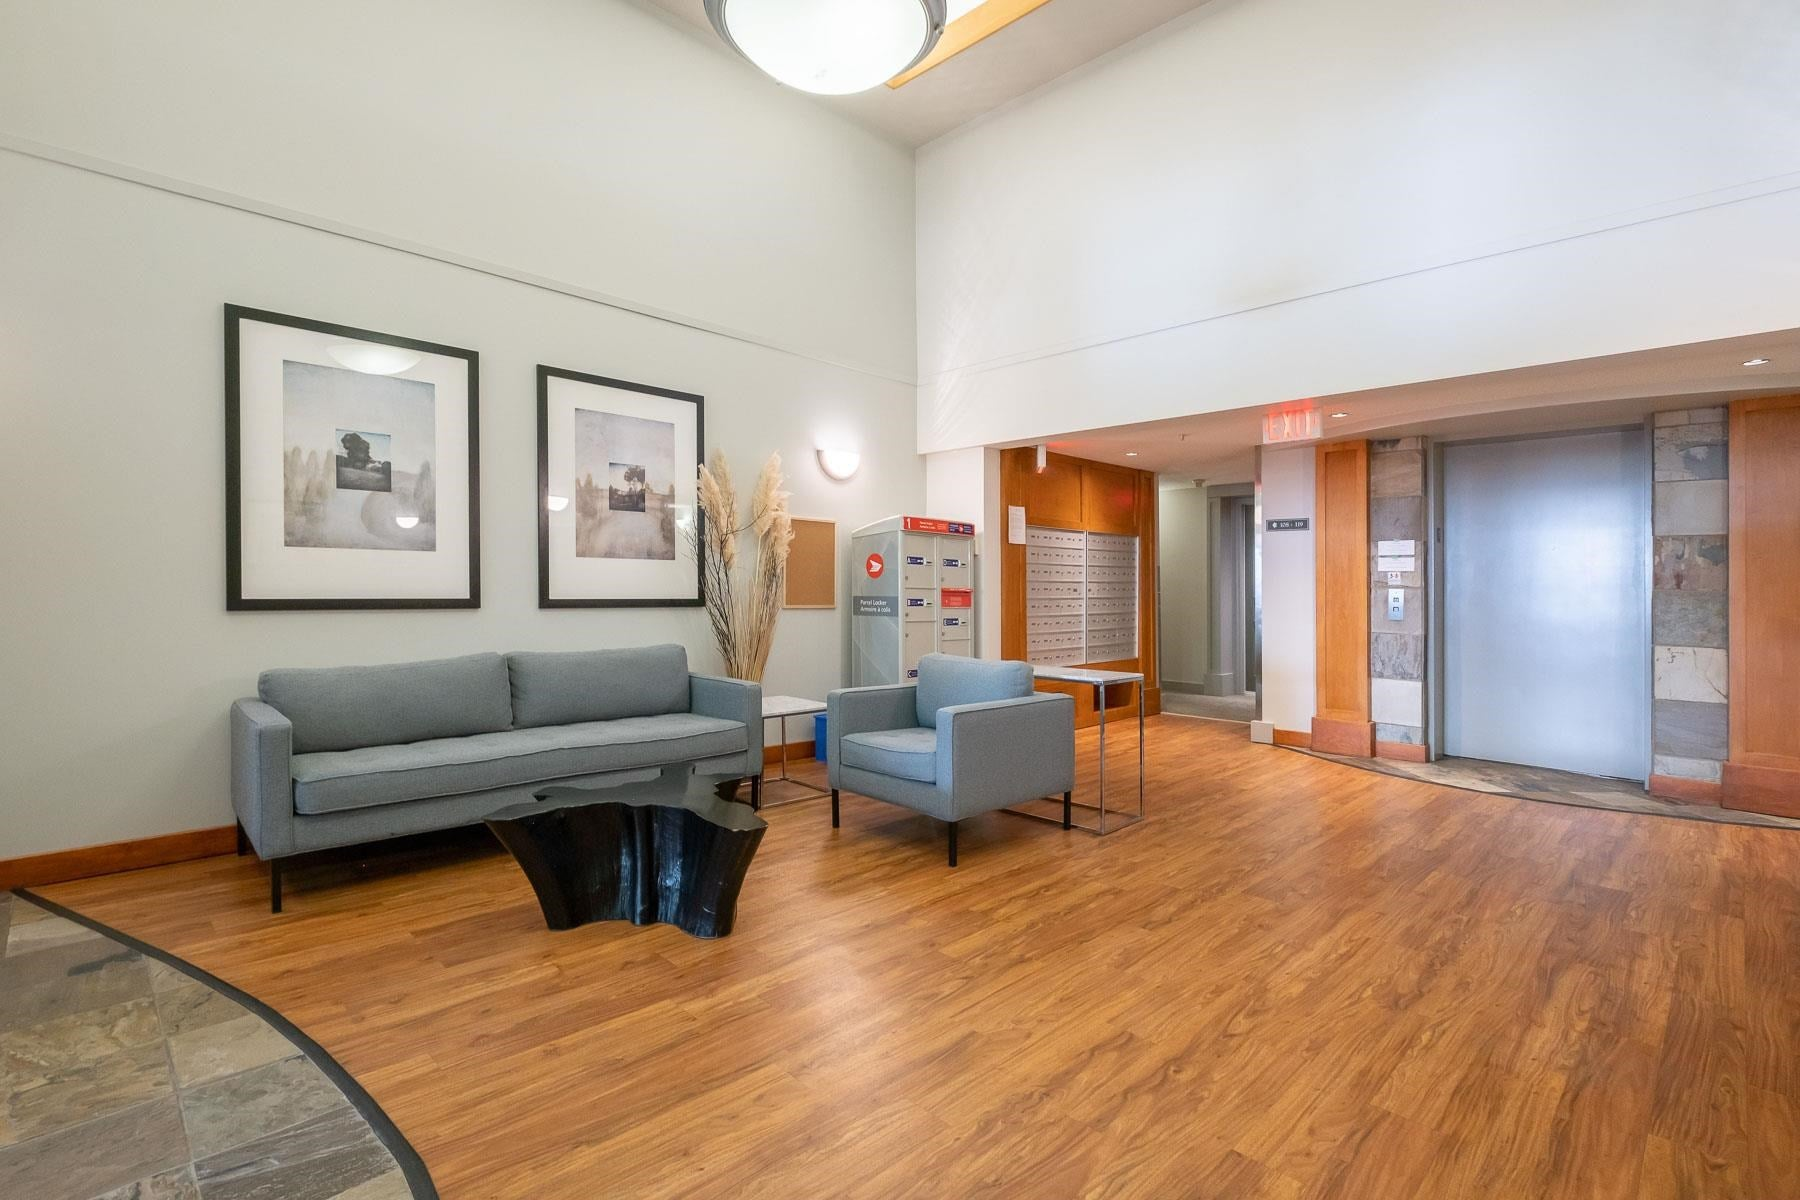 205 333 E 1ST STREET - Lower Lonsdale Apartment/Condo for sale, 1 Bedroom (R2618010) - #28